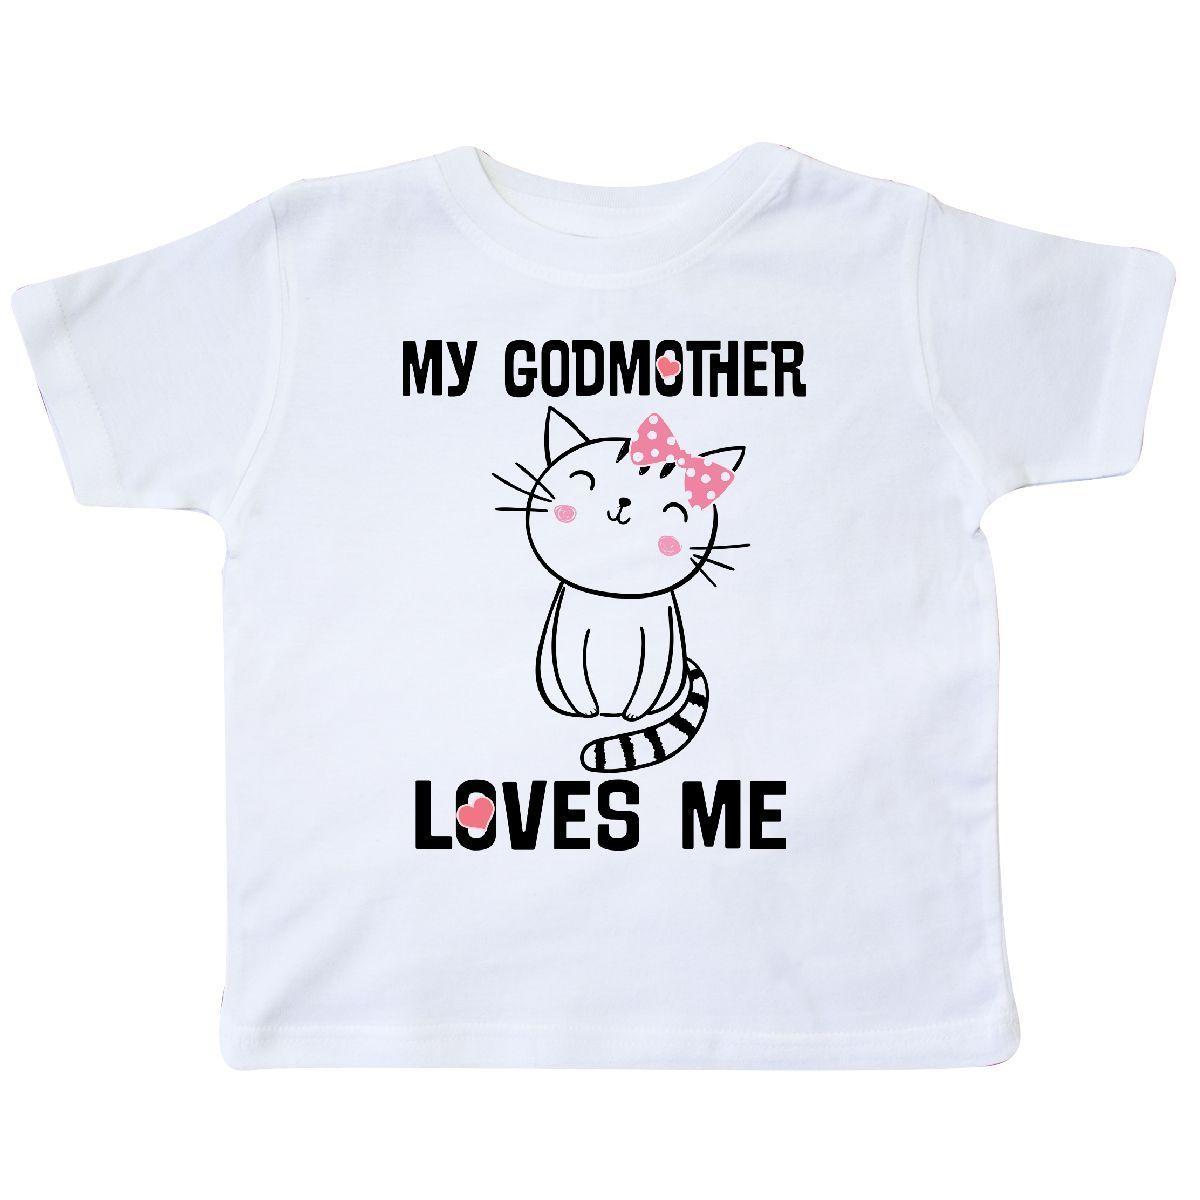 afa0c5e0 Inktastic My Godmother Loves Me Girls Kitty Toddler T Shirt Goddaughter  Godchild Denim Clothes Camiseta T Shirt Buy Shirt Designs Funny Clever T  Shirts From ...